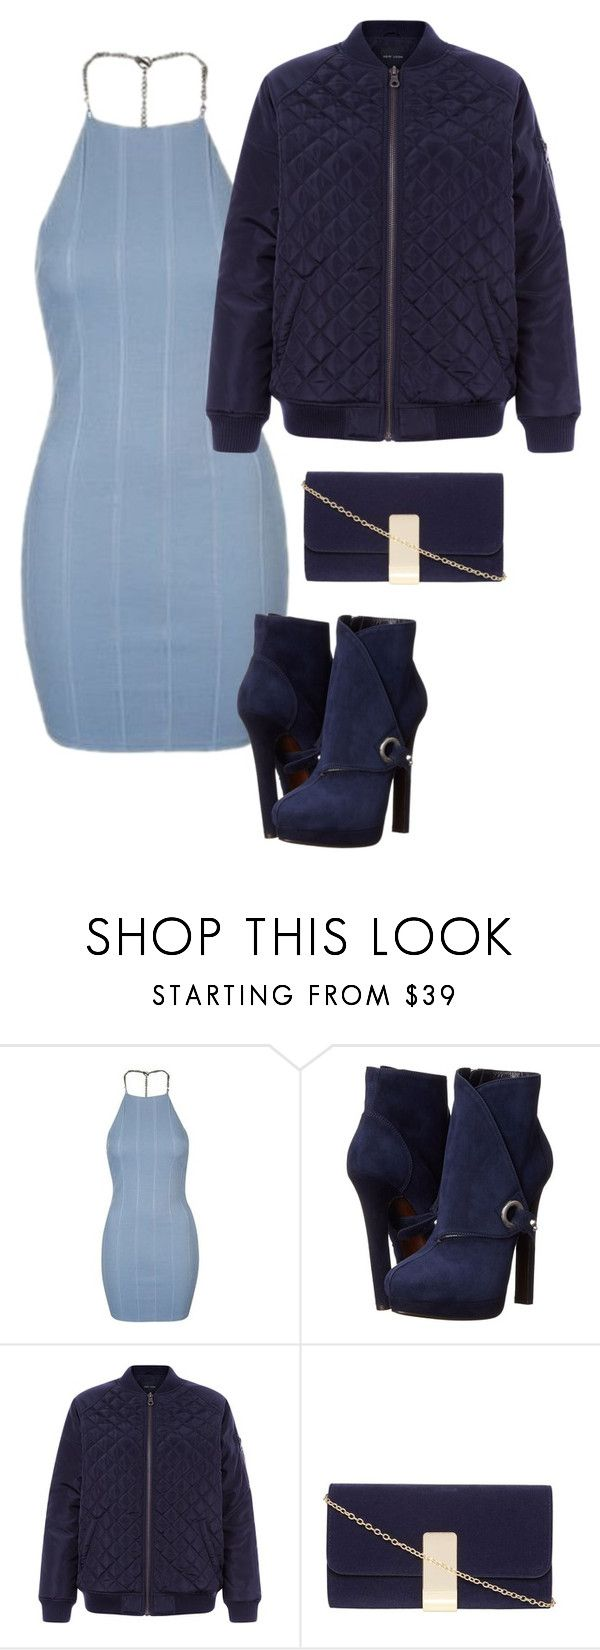 """Untitled #47"" by tasneemkm ❤ liked on Polyvore featuring Topshop, Alexander McQueen, New Look and Dorothy Perkins"